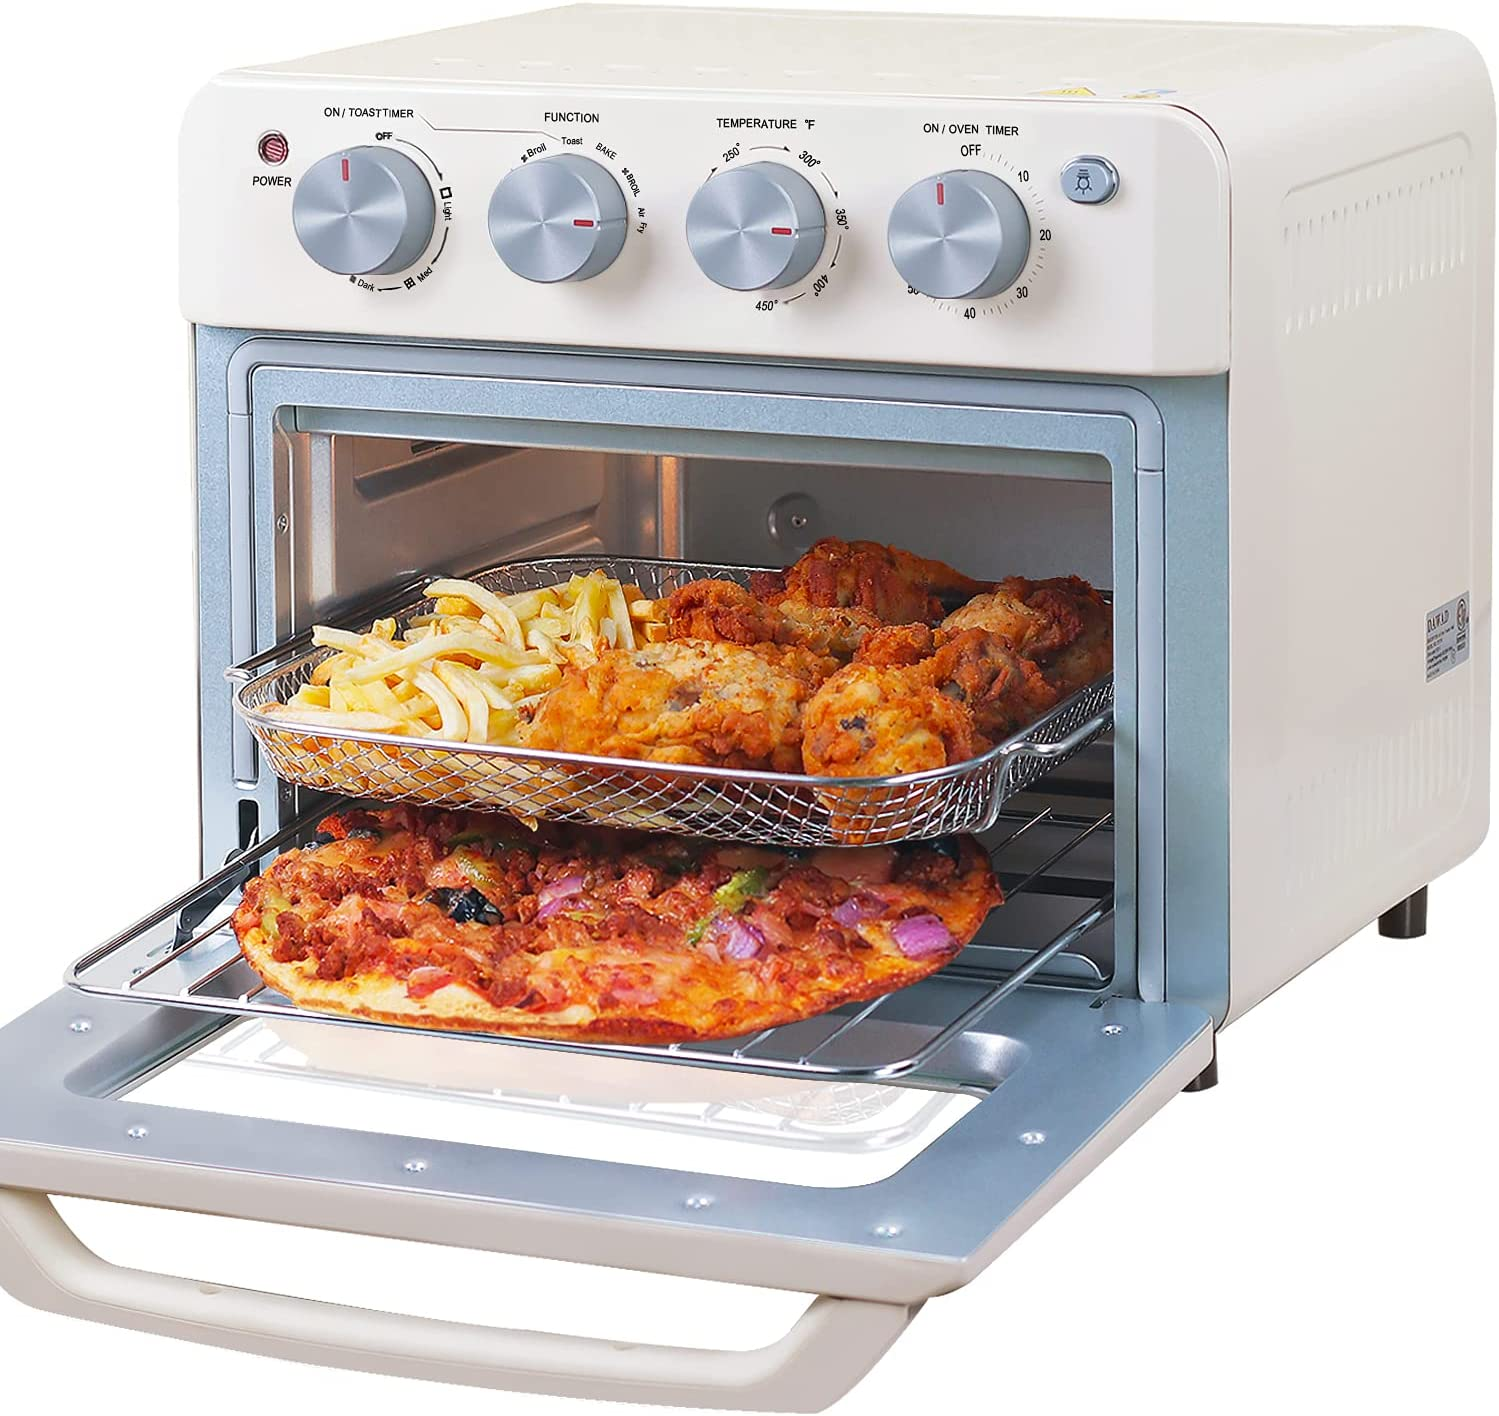 DAWAD Convection Toaster Oven Air Fryer Countertop, Compact Small Baking Oven With Air Fry, Bake, Broil, Toast, Warm, 19QT With 4 Accessories, 33 Original Recipes, 1550W, Cream White